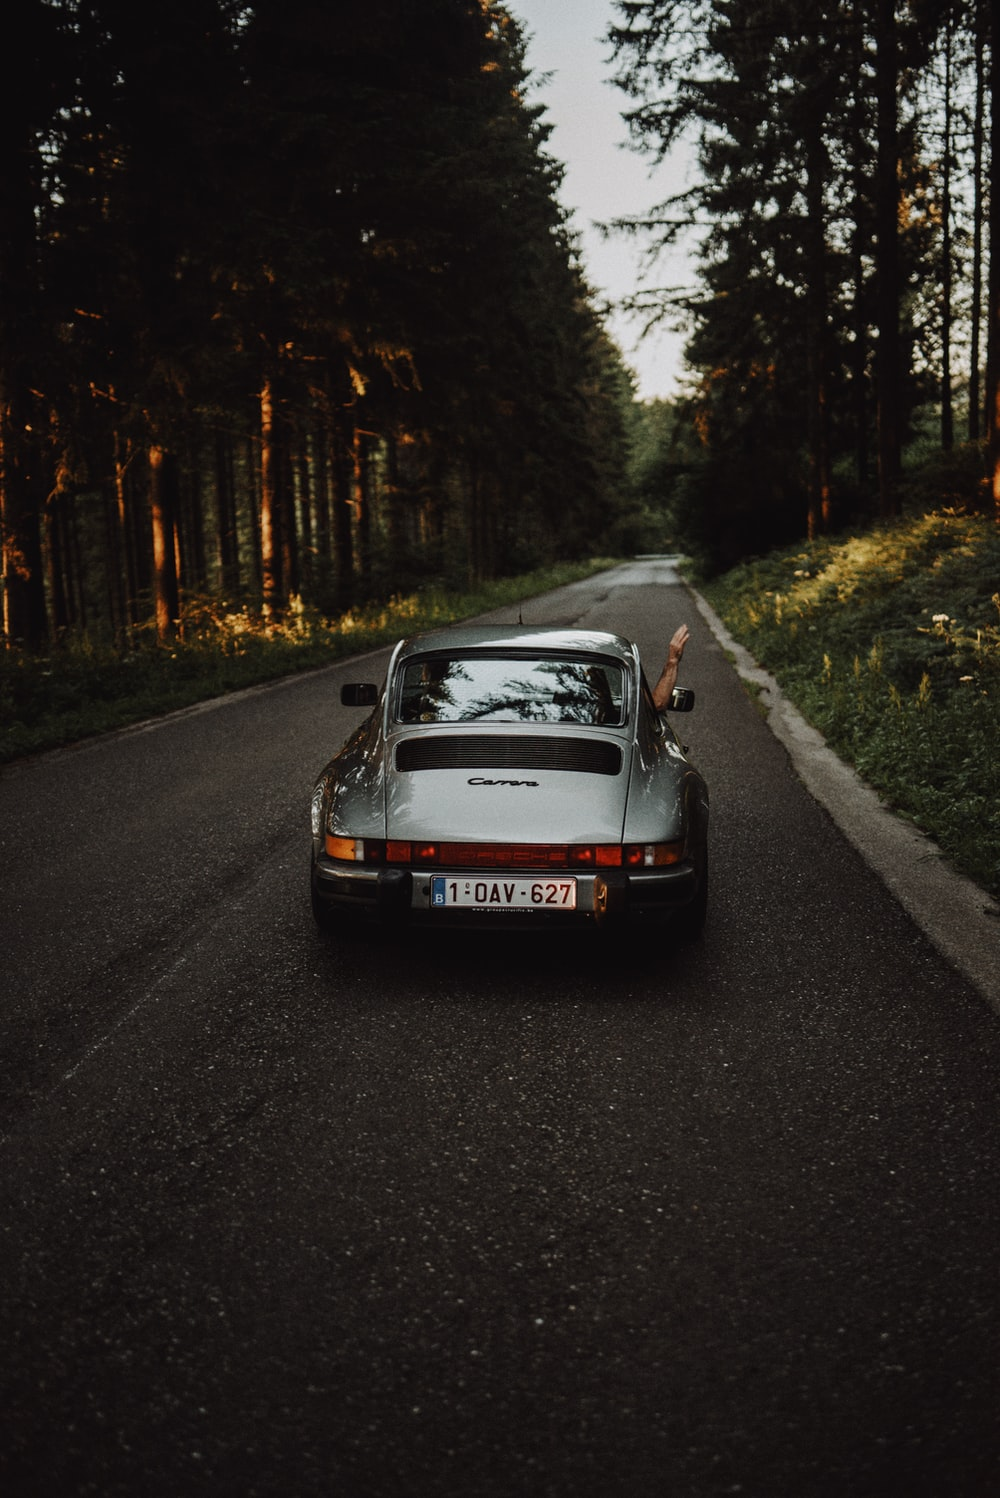 red and white porsche 911 on road during daytime